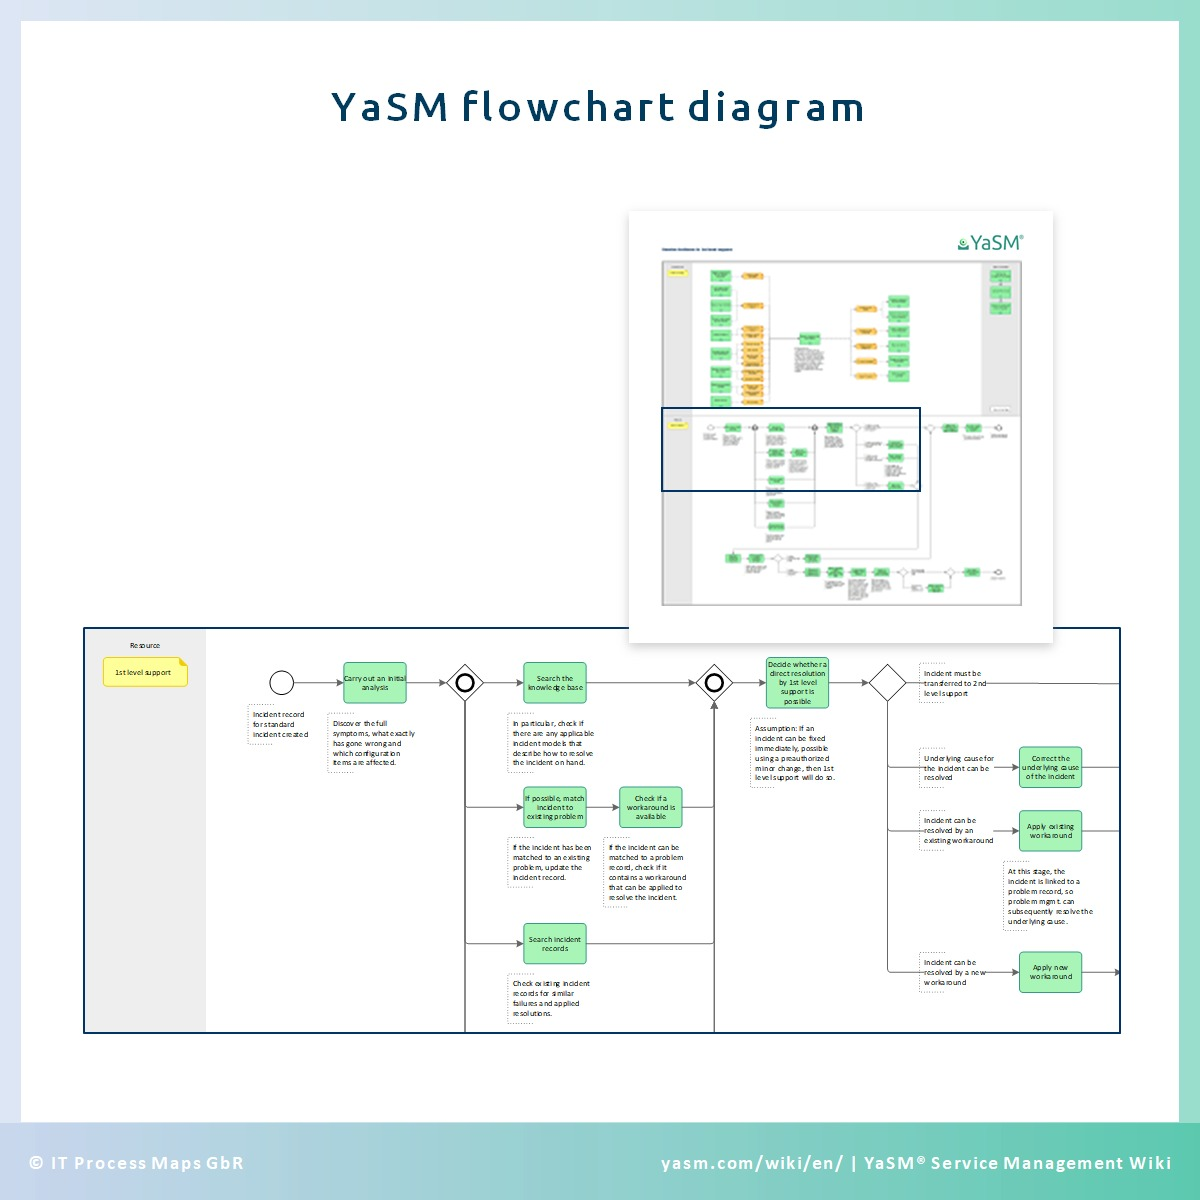 Yasm implementation service management process design yasm wiki flowchart diagrams to support the documentation of the processes nvjuhfo Choice Image